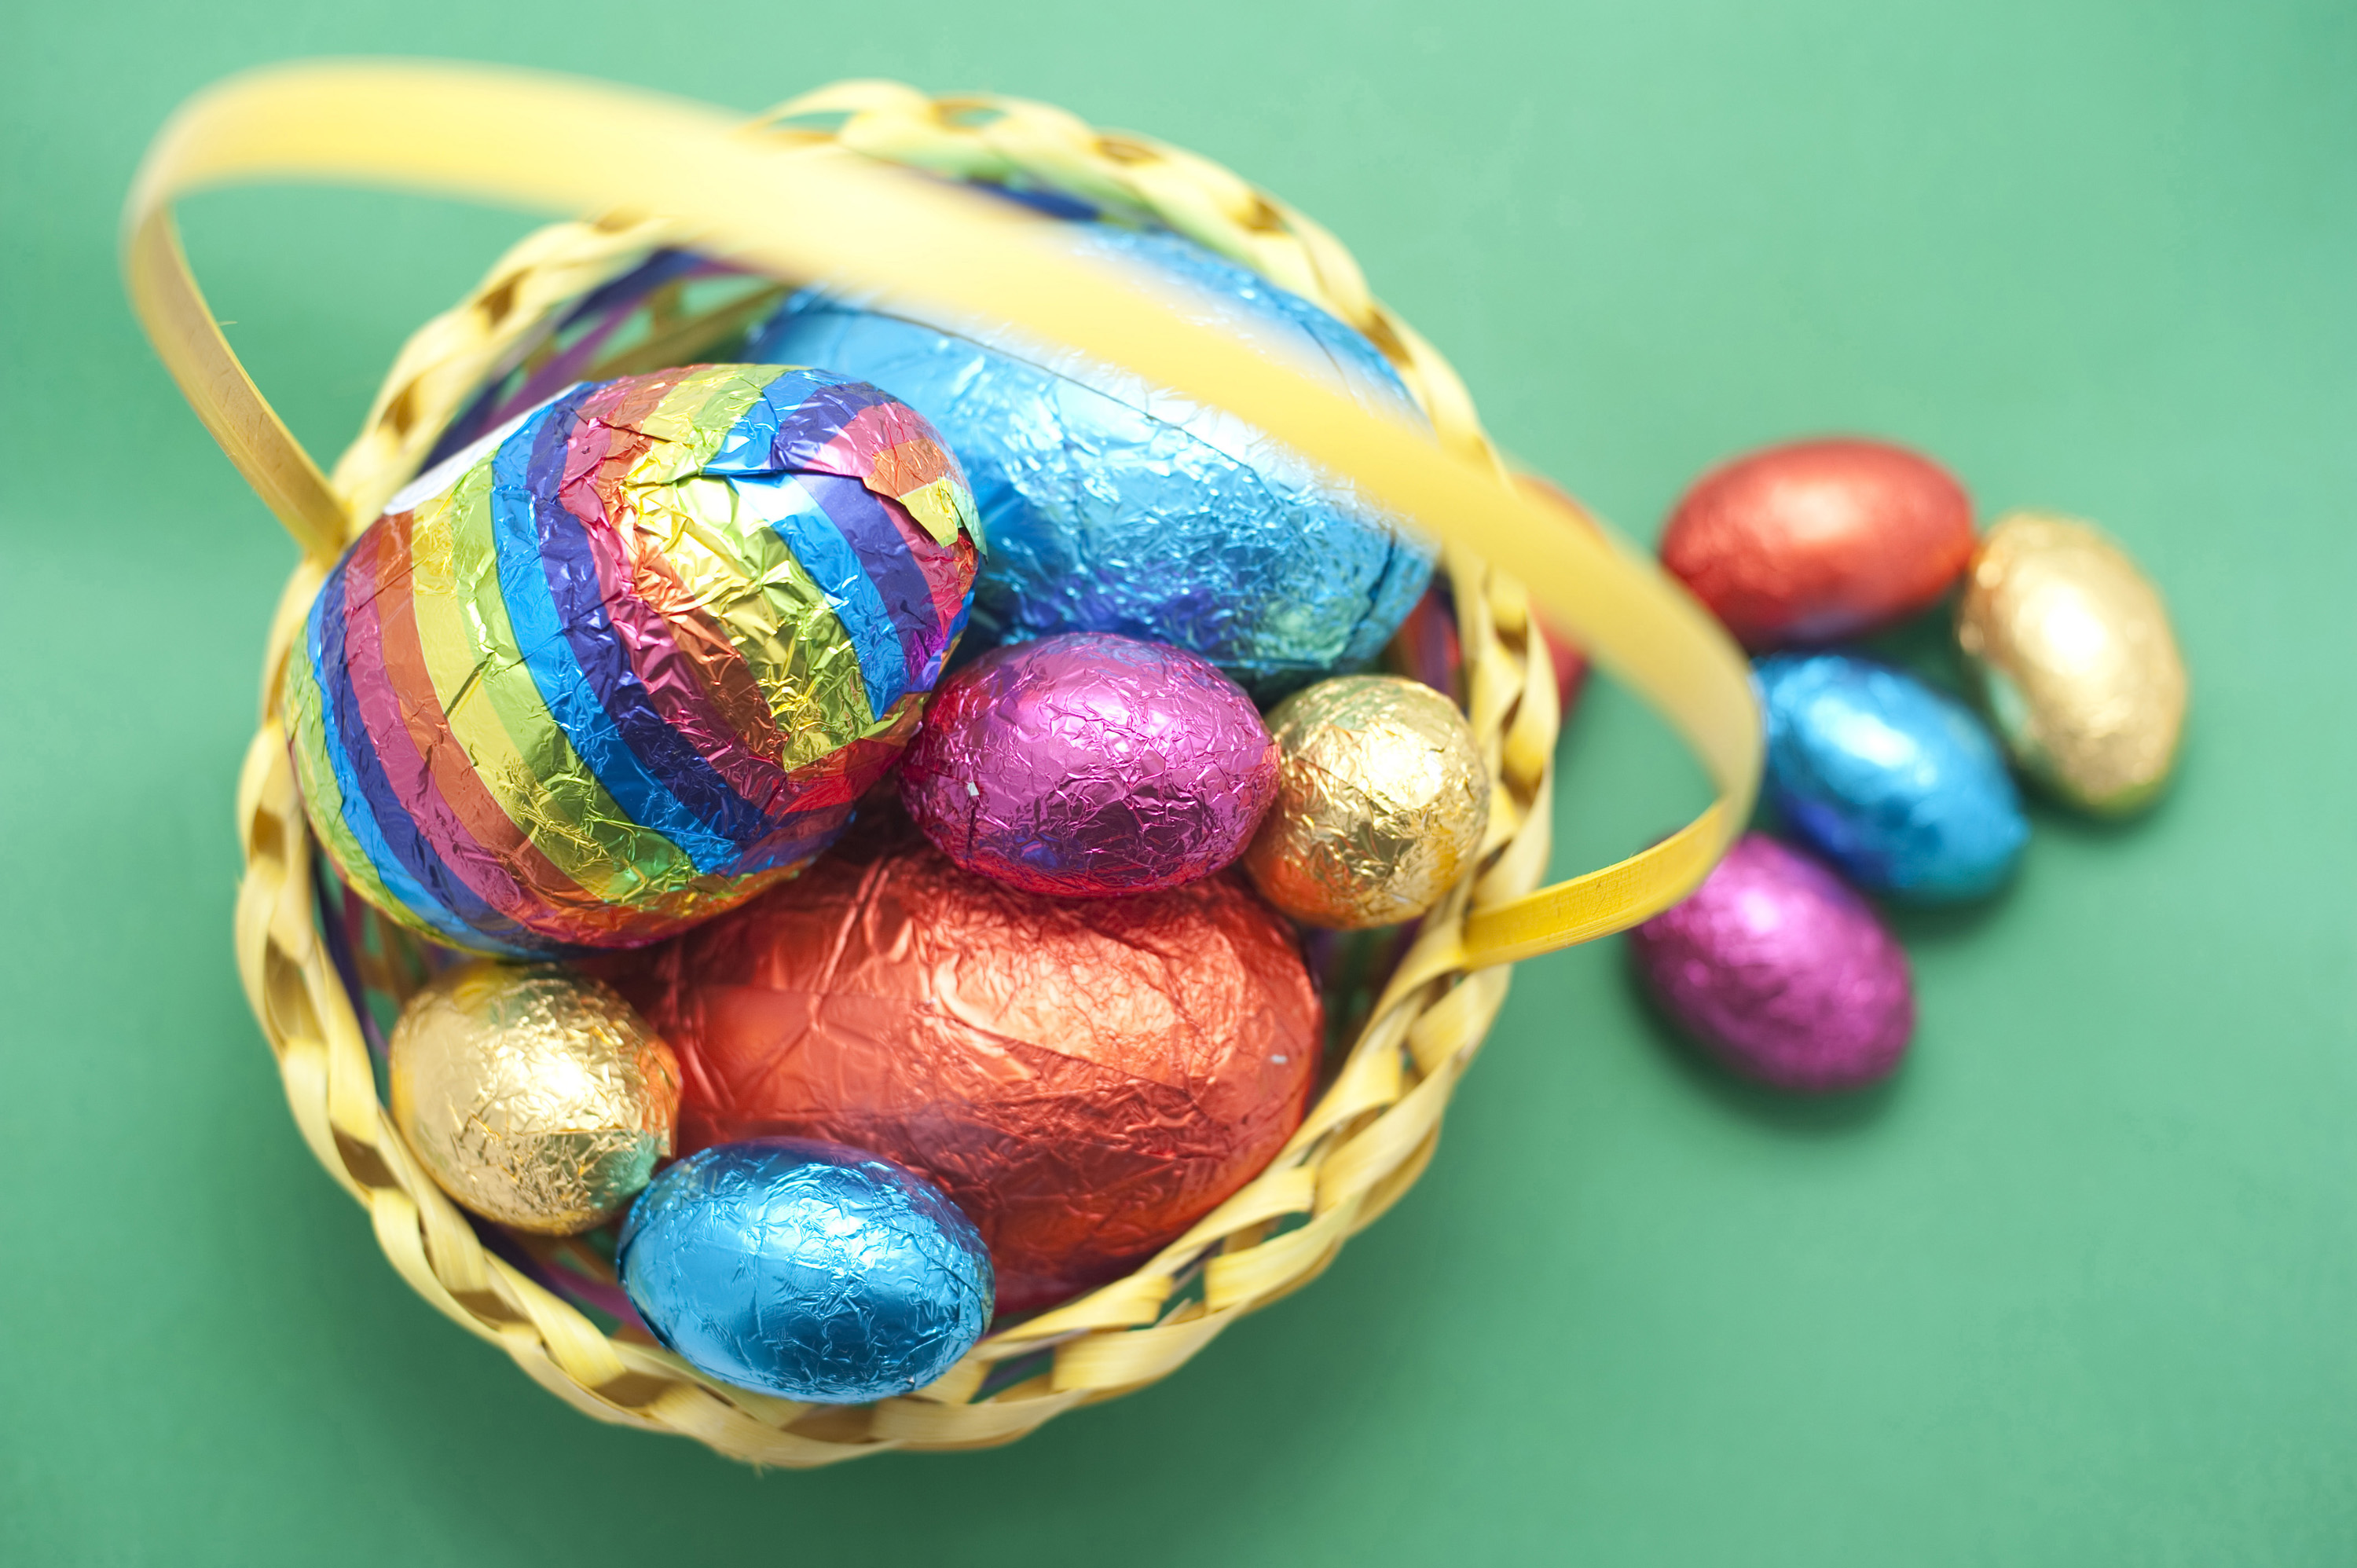 egg_basket.jpg - Colorful chocolate Easter Egg basket with a collection of different sized and coloured eggs on a green background